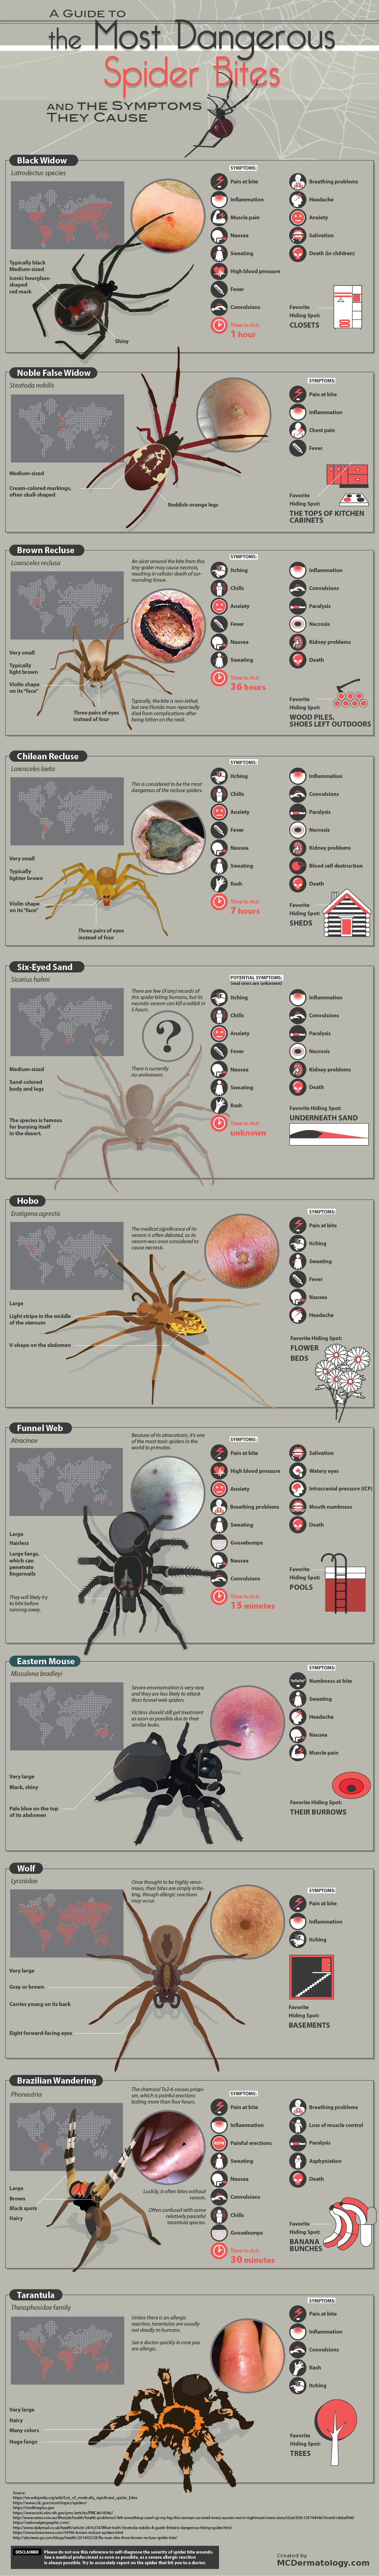 How to Recognize Dangerous Spider Bites - Infographic